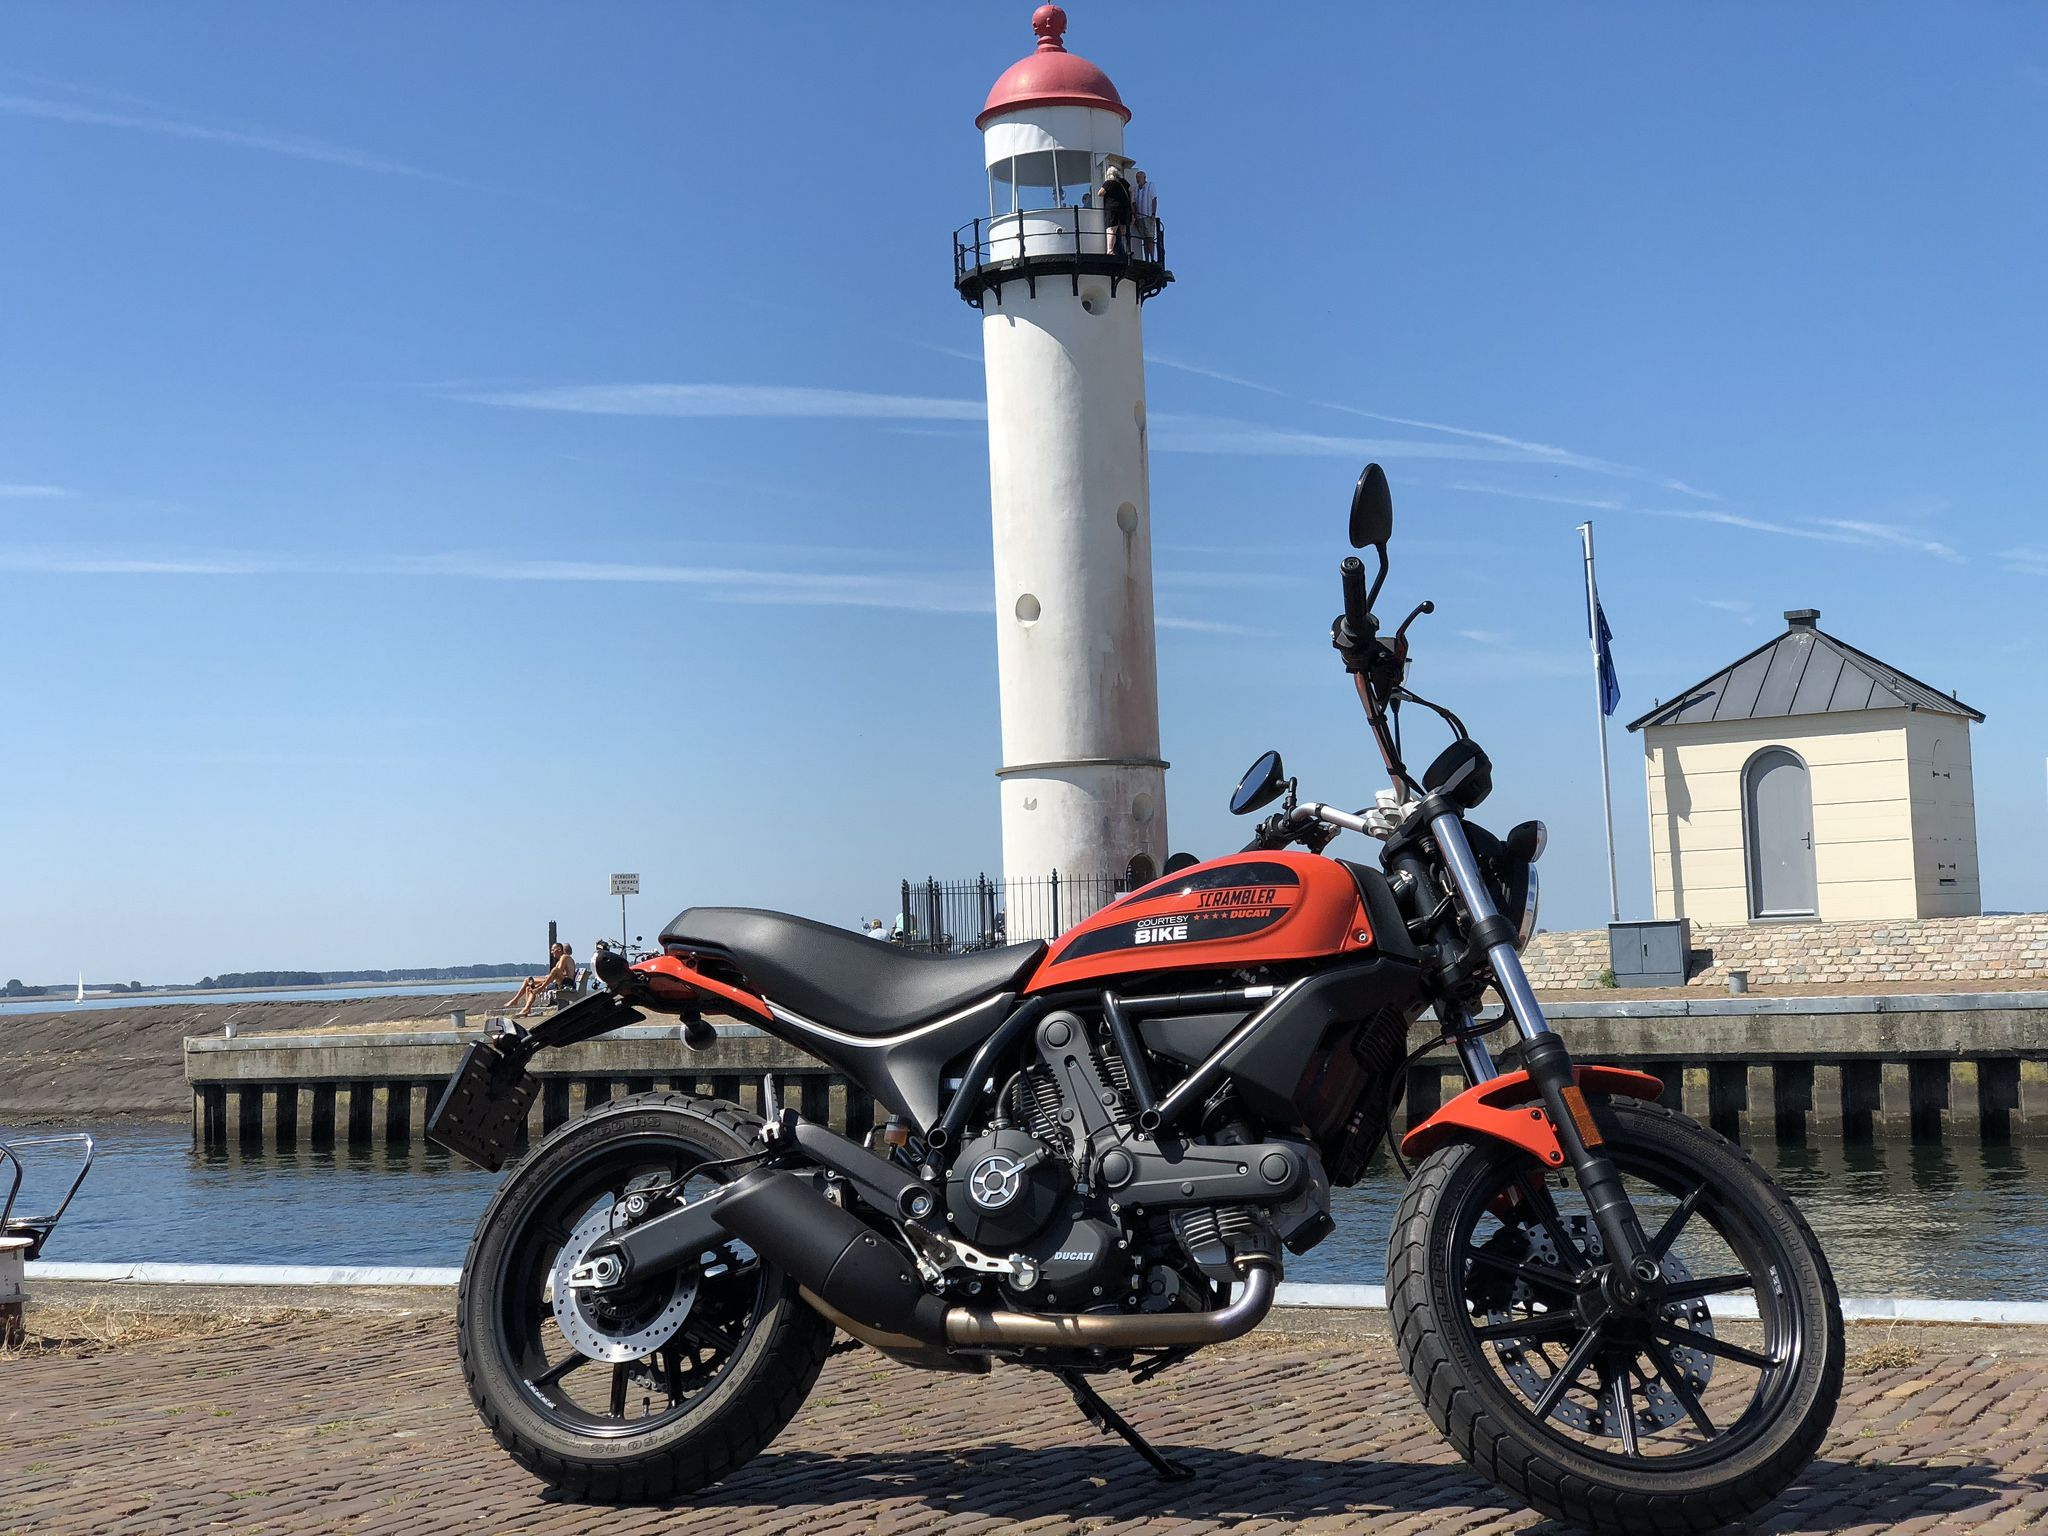 Lighthouse, red Ducati Scrambler